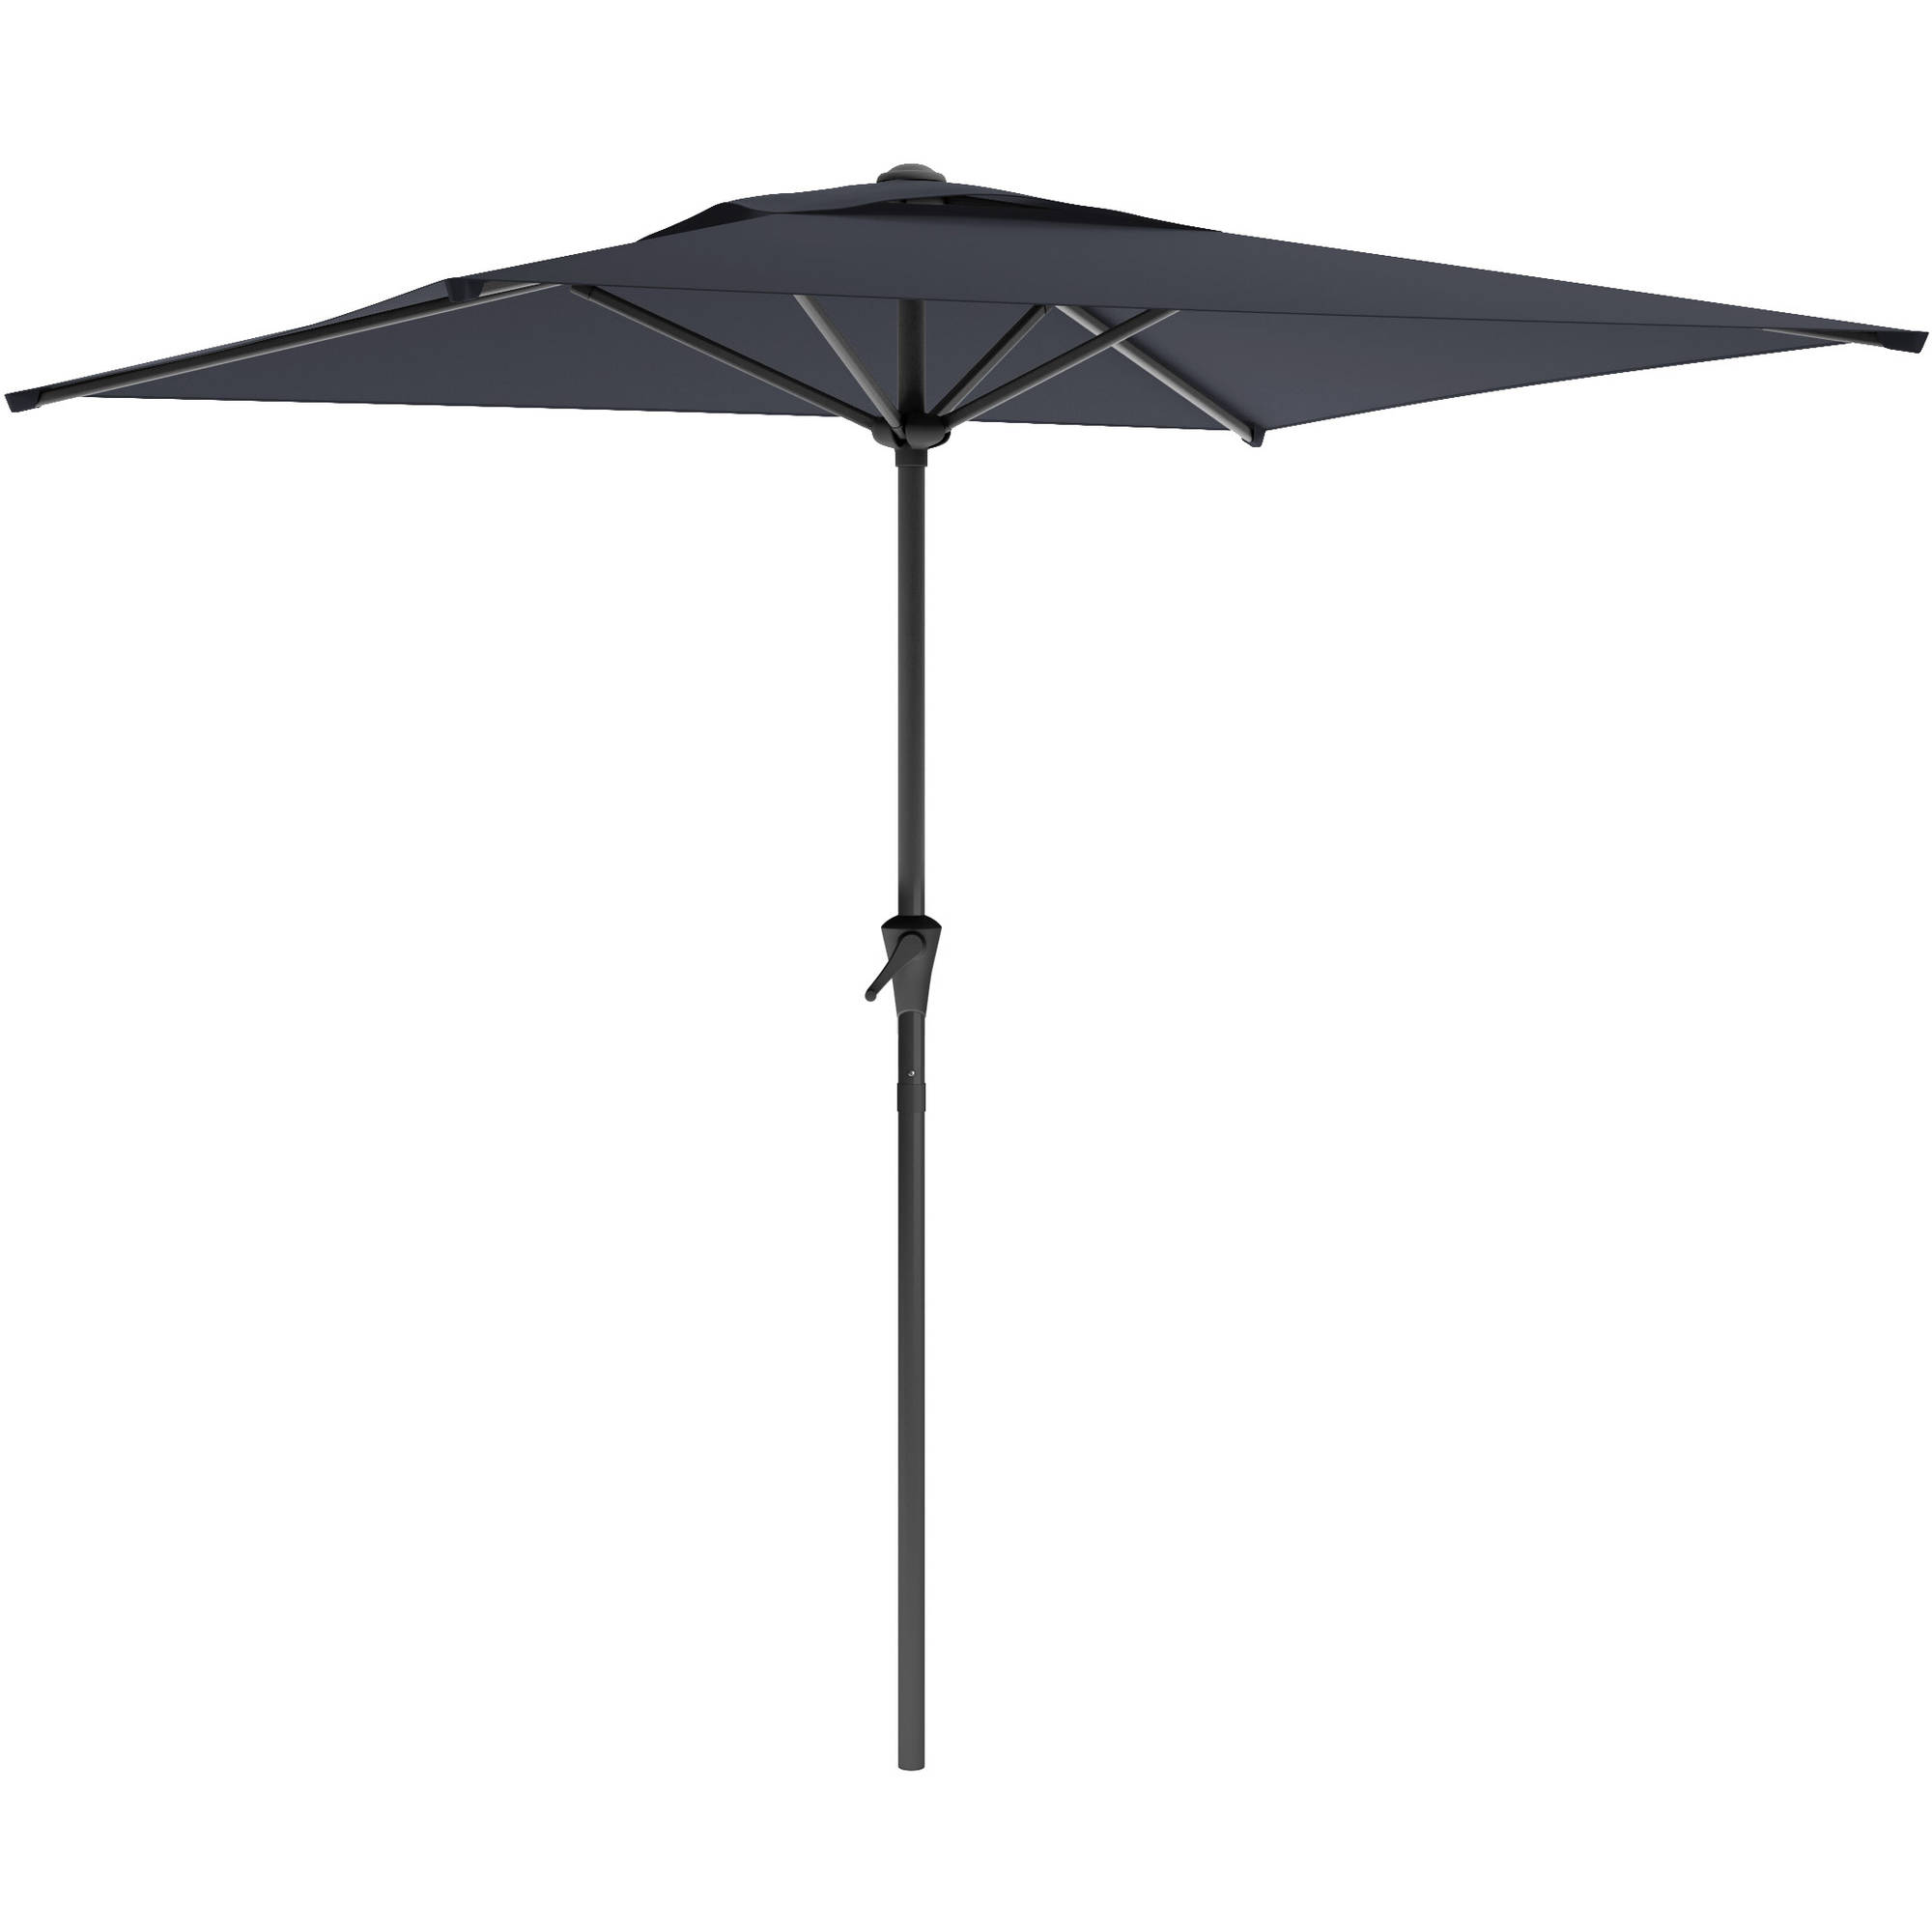 CorLiving Square Patio Umbrella by Sonax